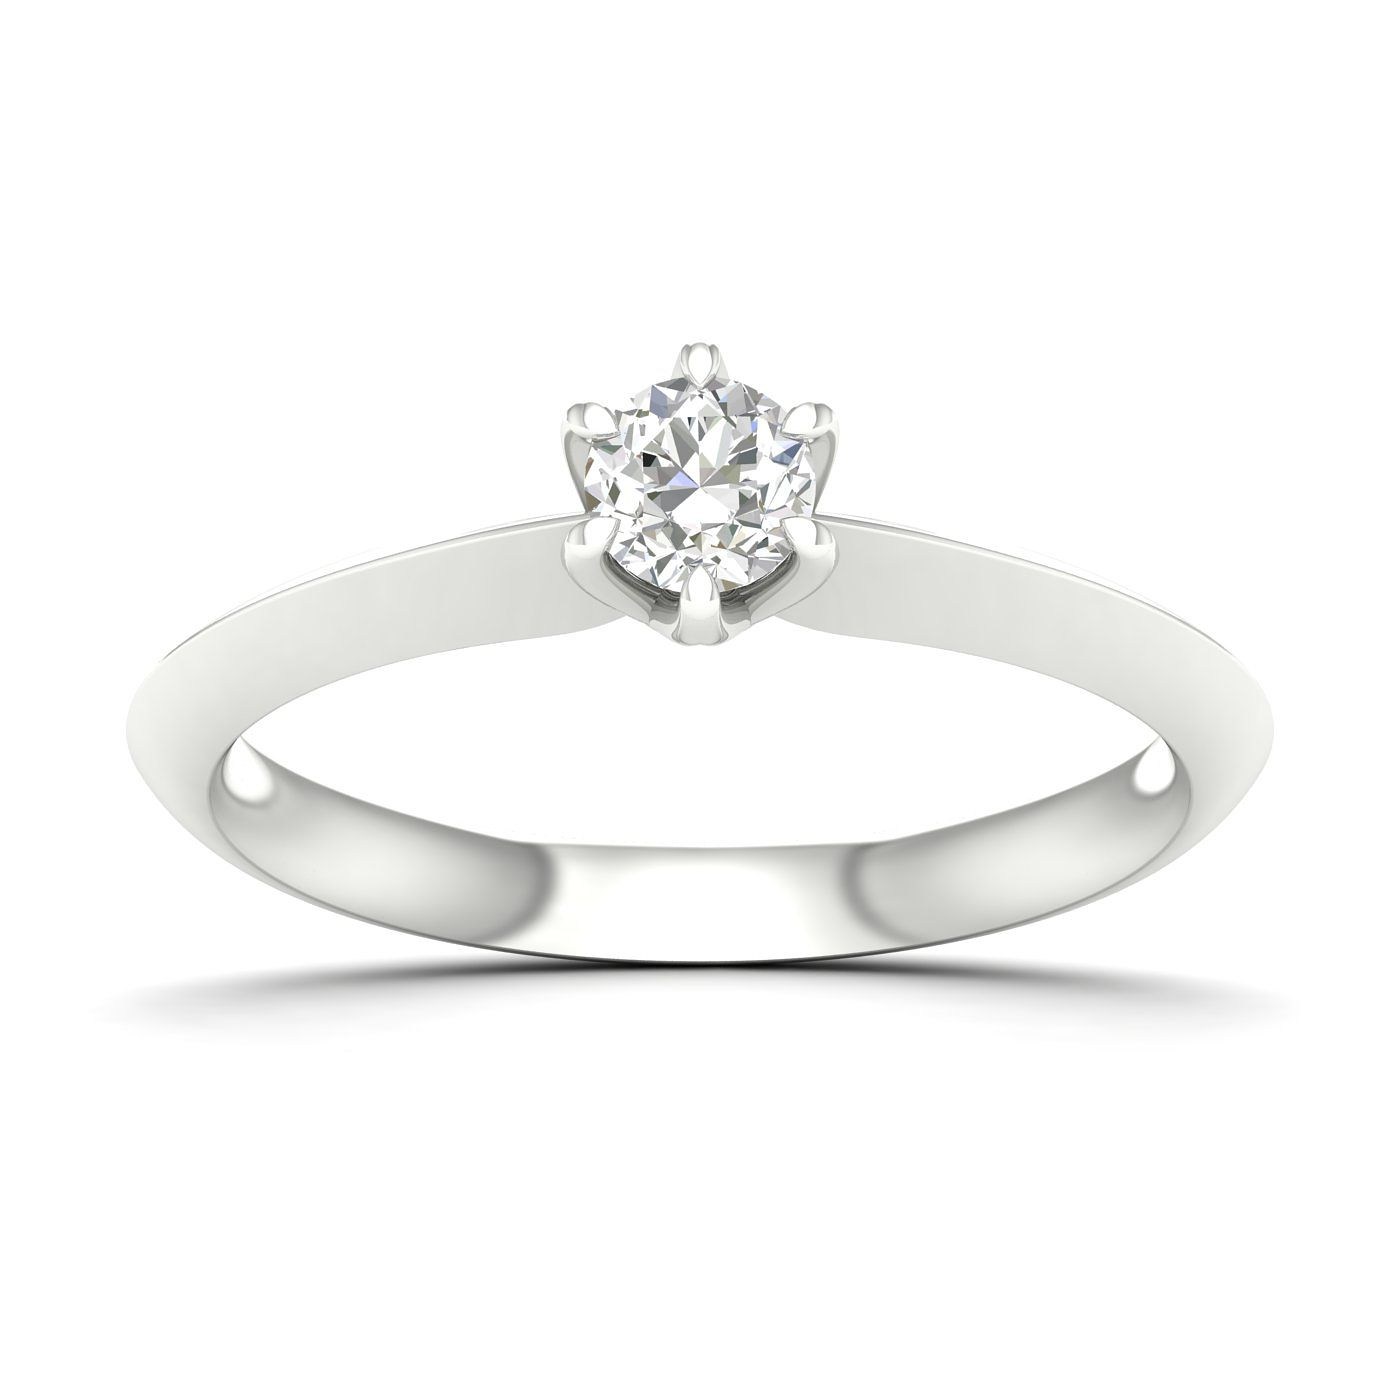 9ct White Gold 0.25ct Diamond Solitaire Ring - Product number 4998111